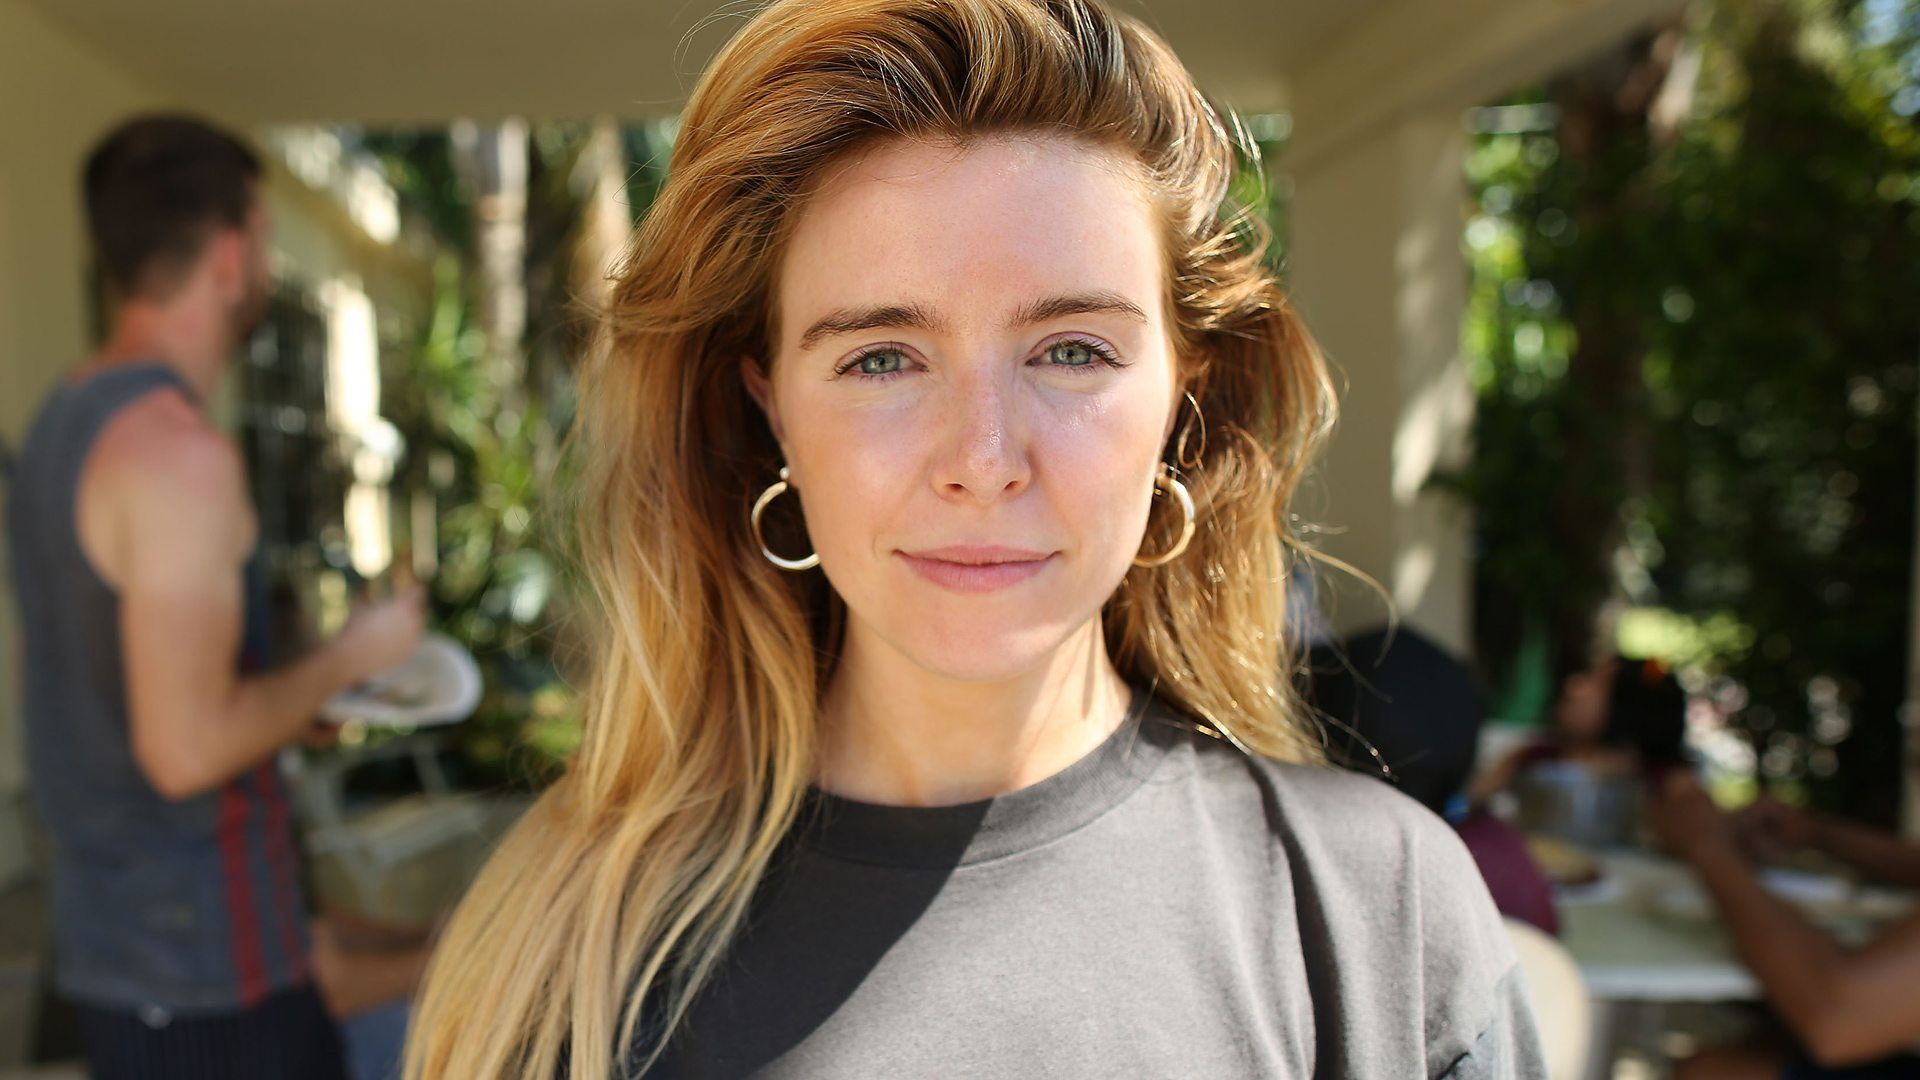 Stacey Dooley Investigates — s07 special-7 — Second Chance Sex Offenders